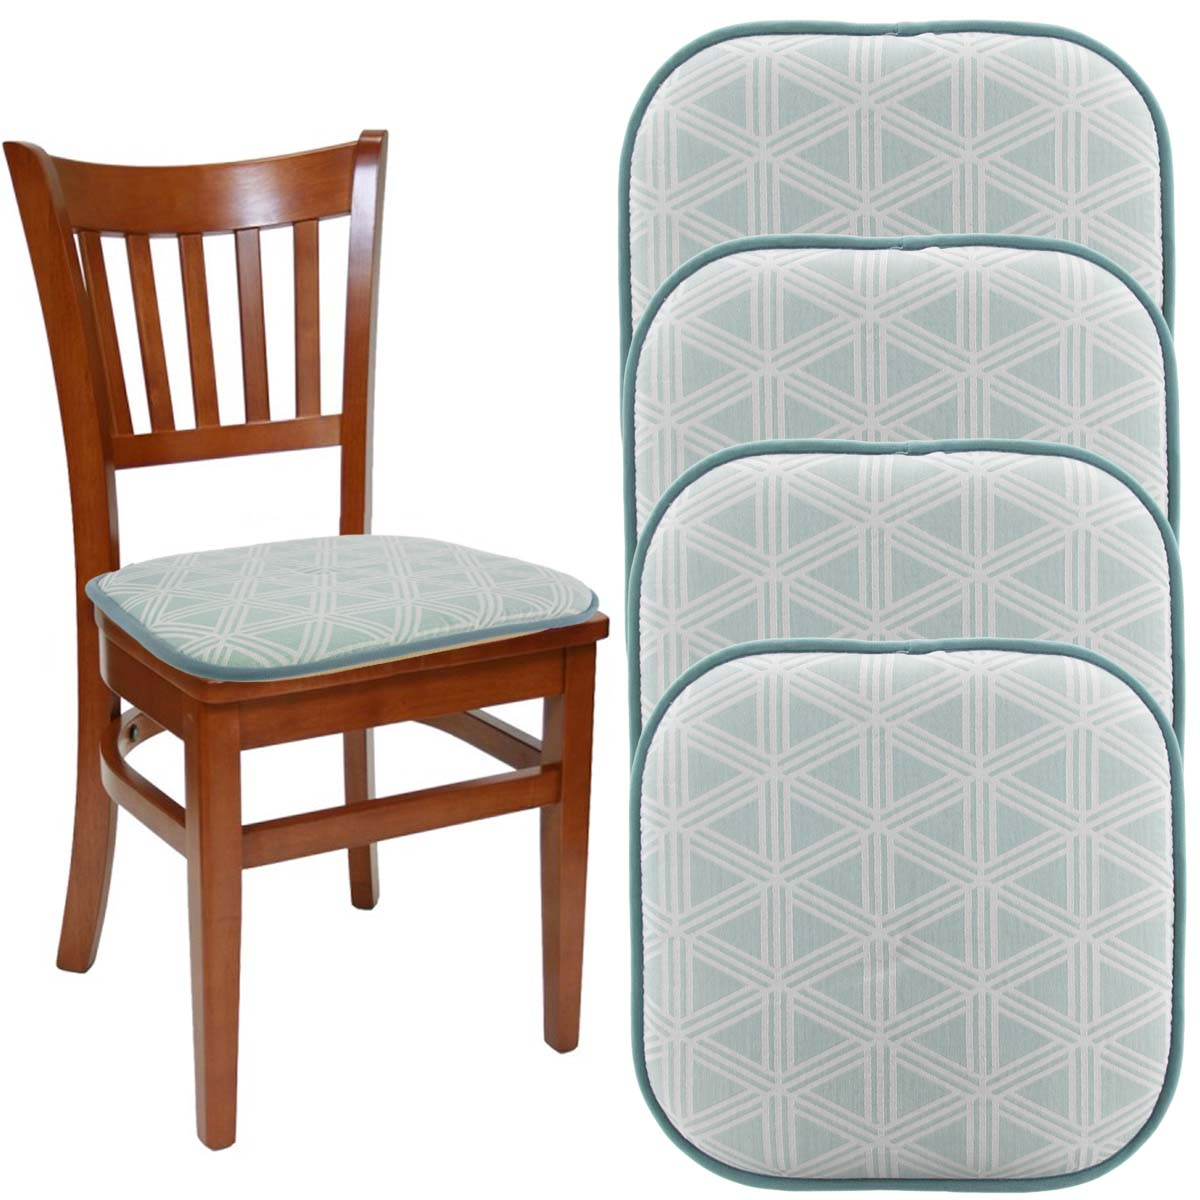 dining chair cushions tie dream home set of 4 gripper chair pads for office chairs 16 16